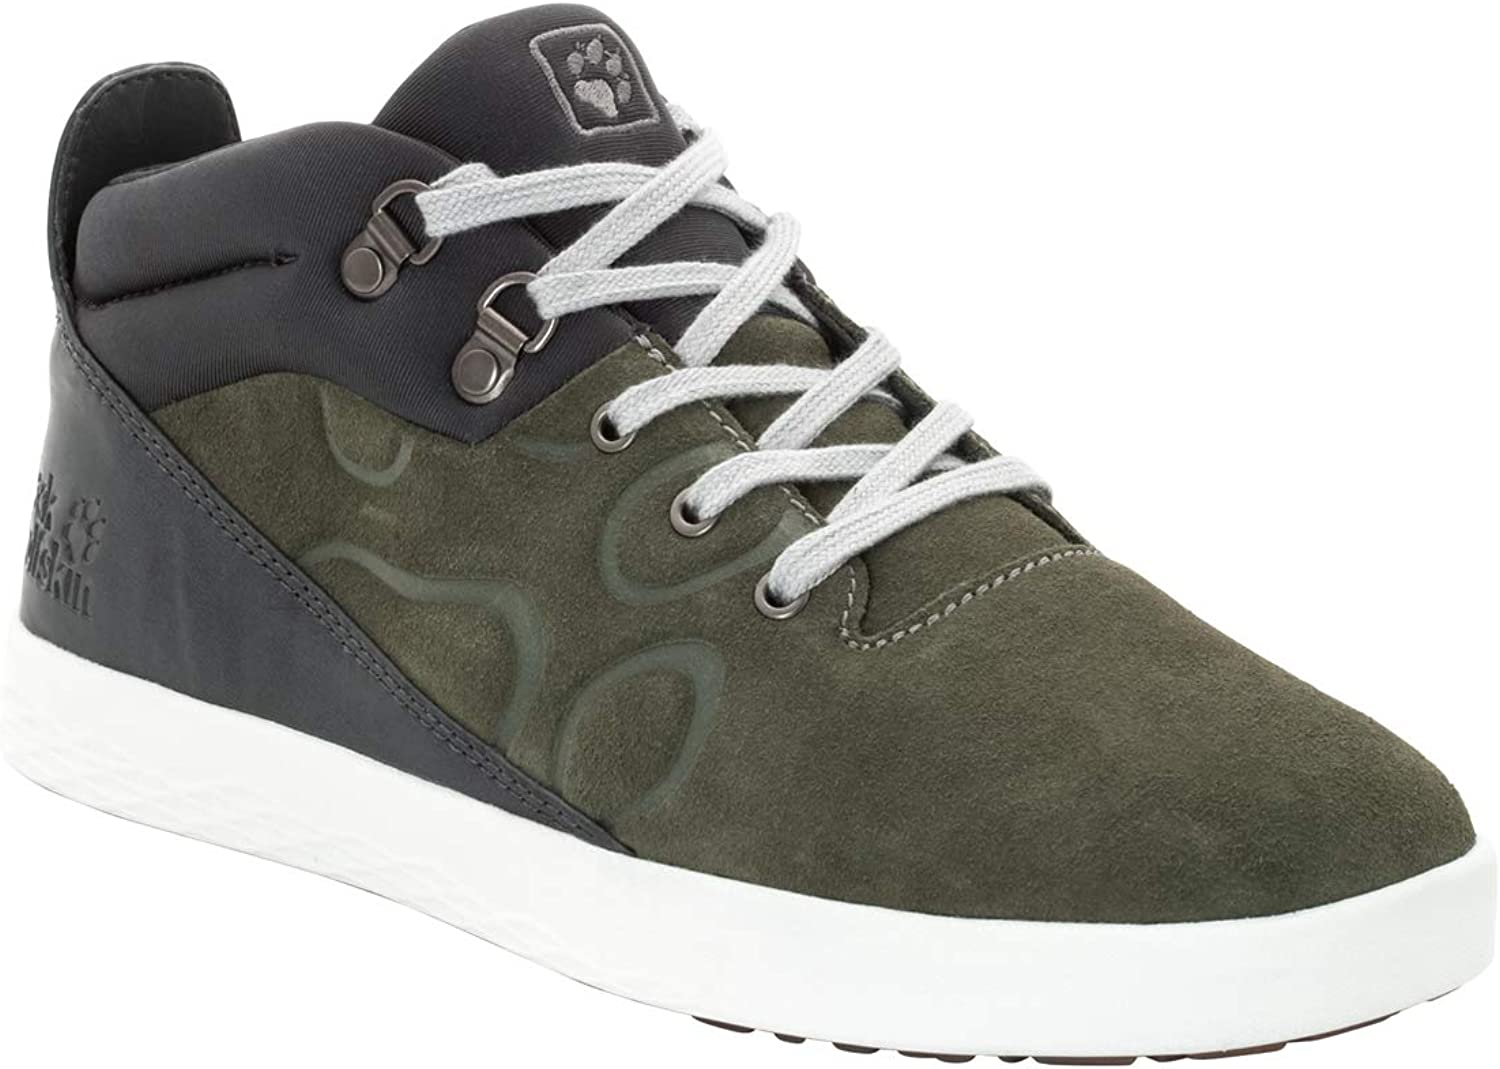 Jack Wolfskin Men's Auckland MID Men's Casual mid top Sneakers shoes